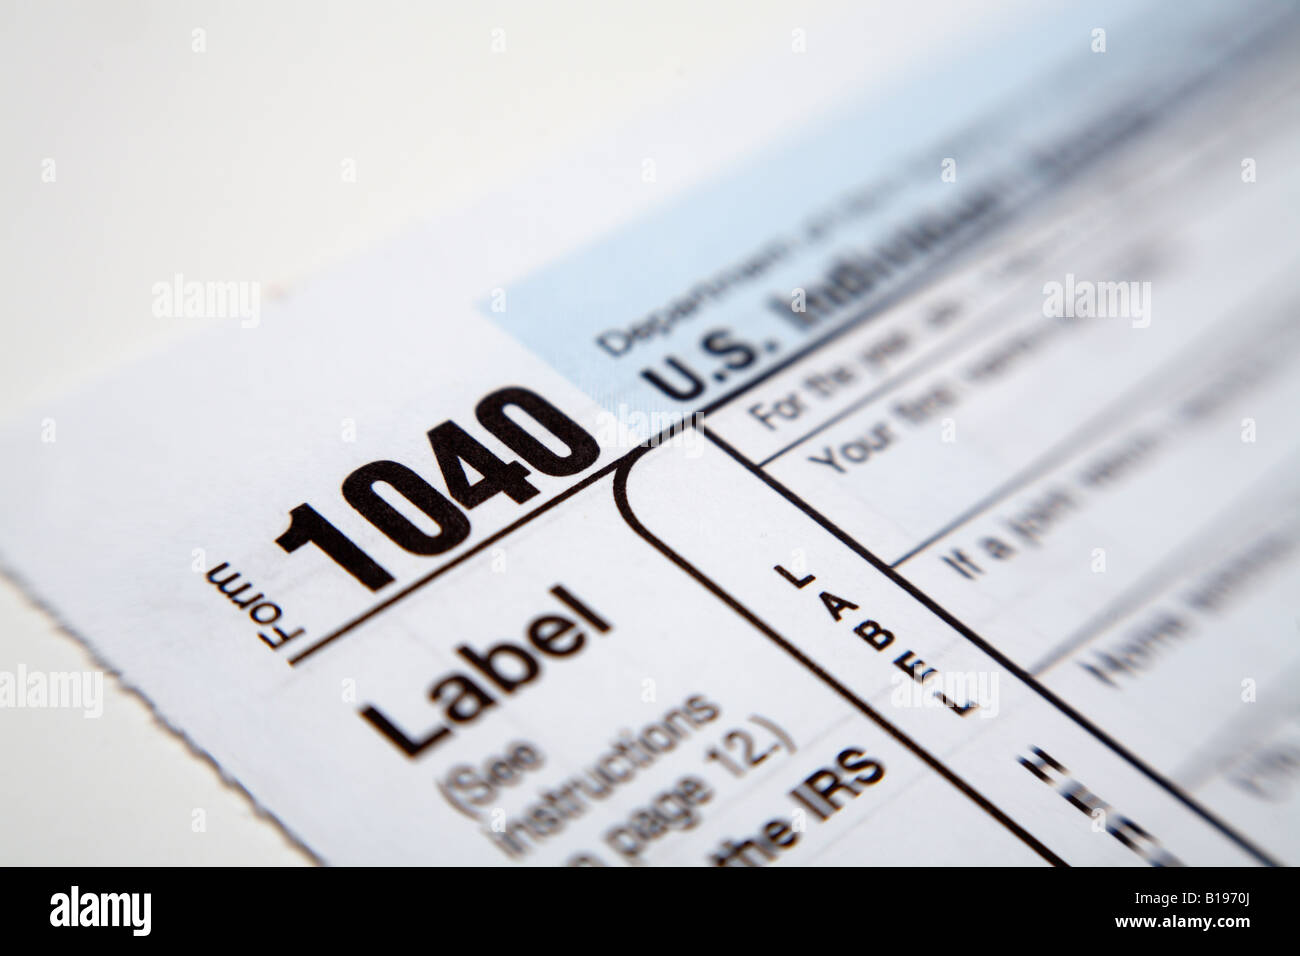 Us federal 1040 income tax form close up stock photo royalty free us federal 1040 income tax form close up falaconquin